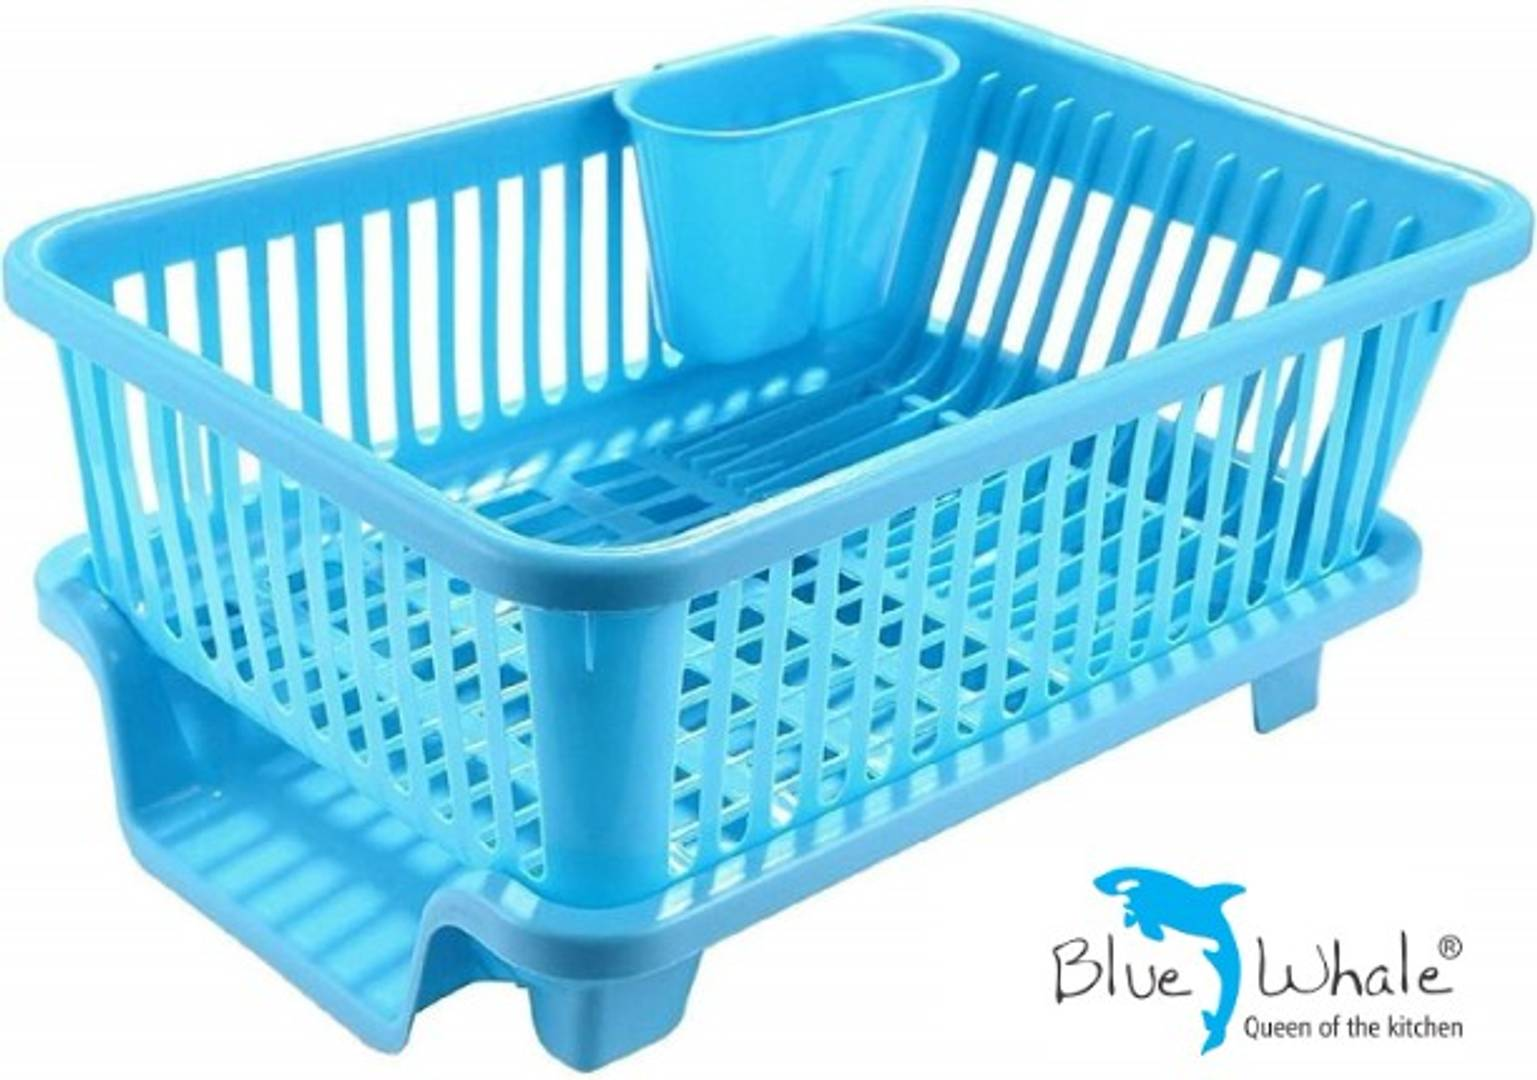 Bluewhale New 3 IN 1 Large Sink Set Dish Rack Drainer Dish Drainer Kitchen Rack (Blue)